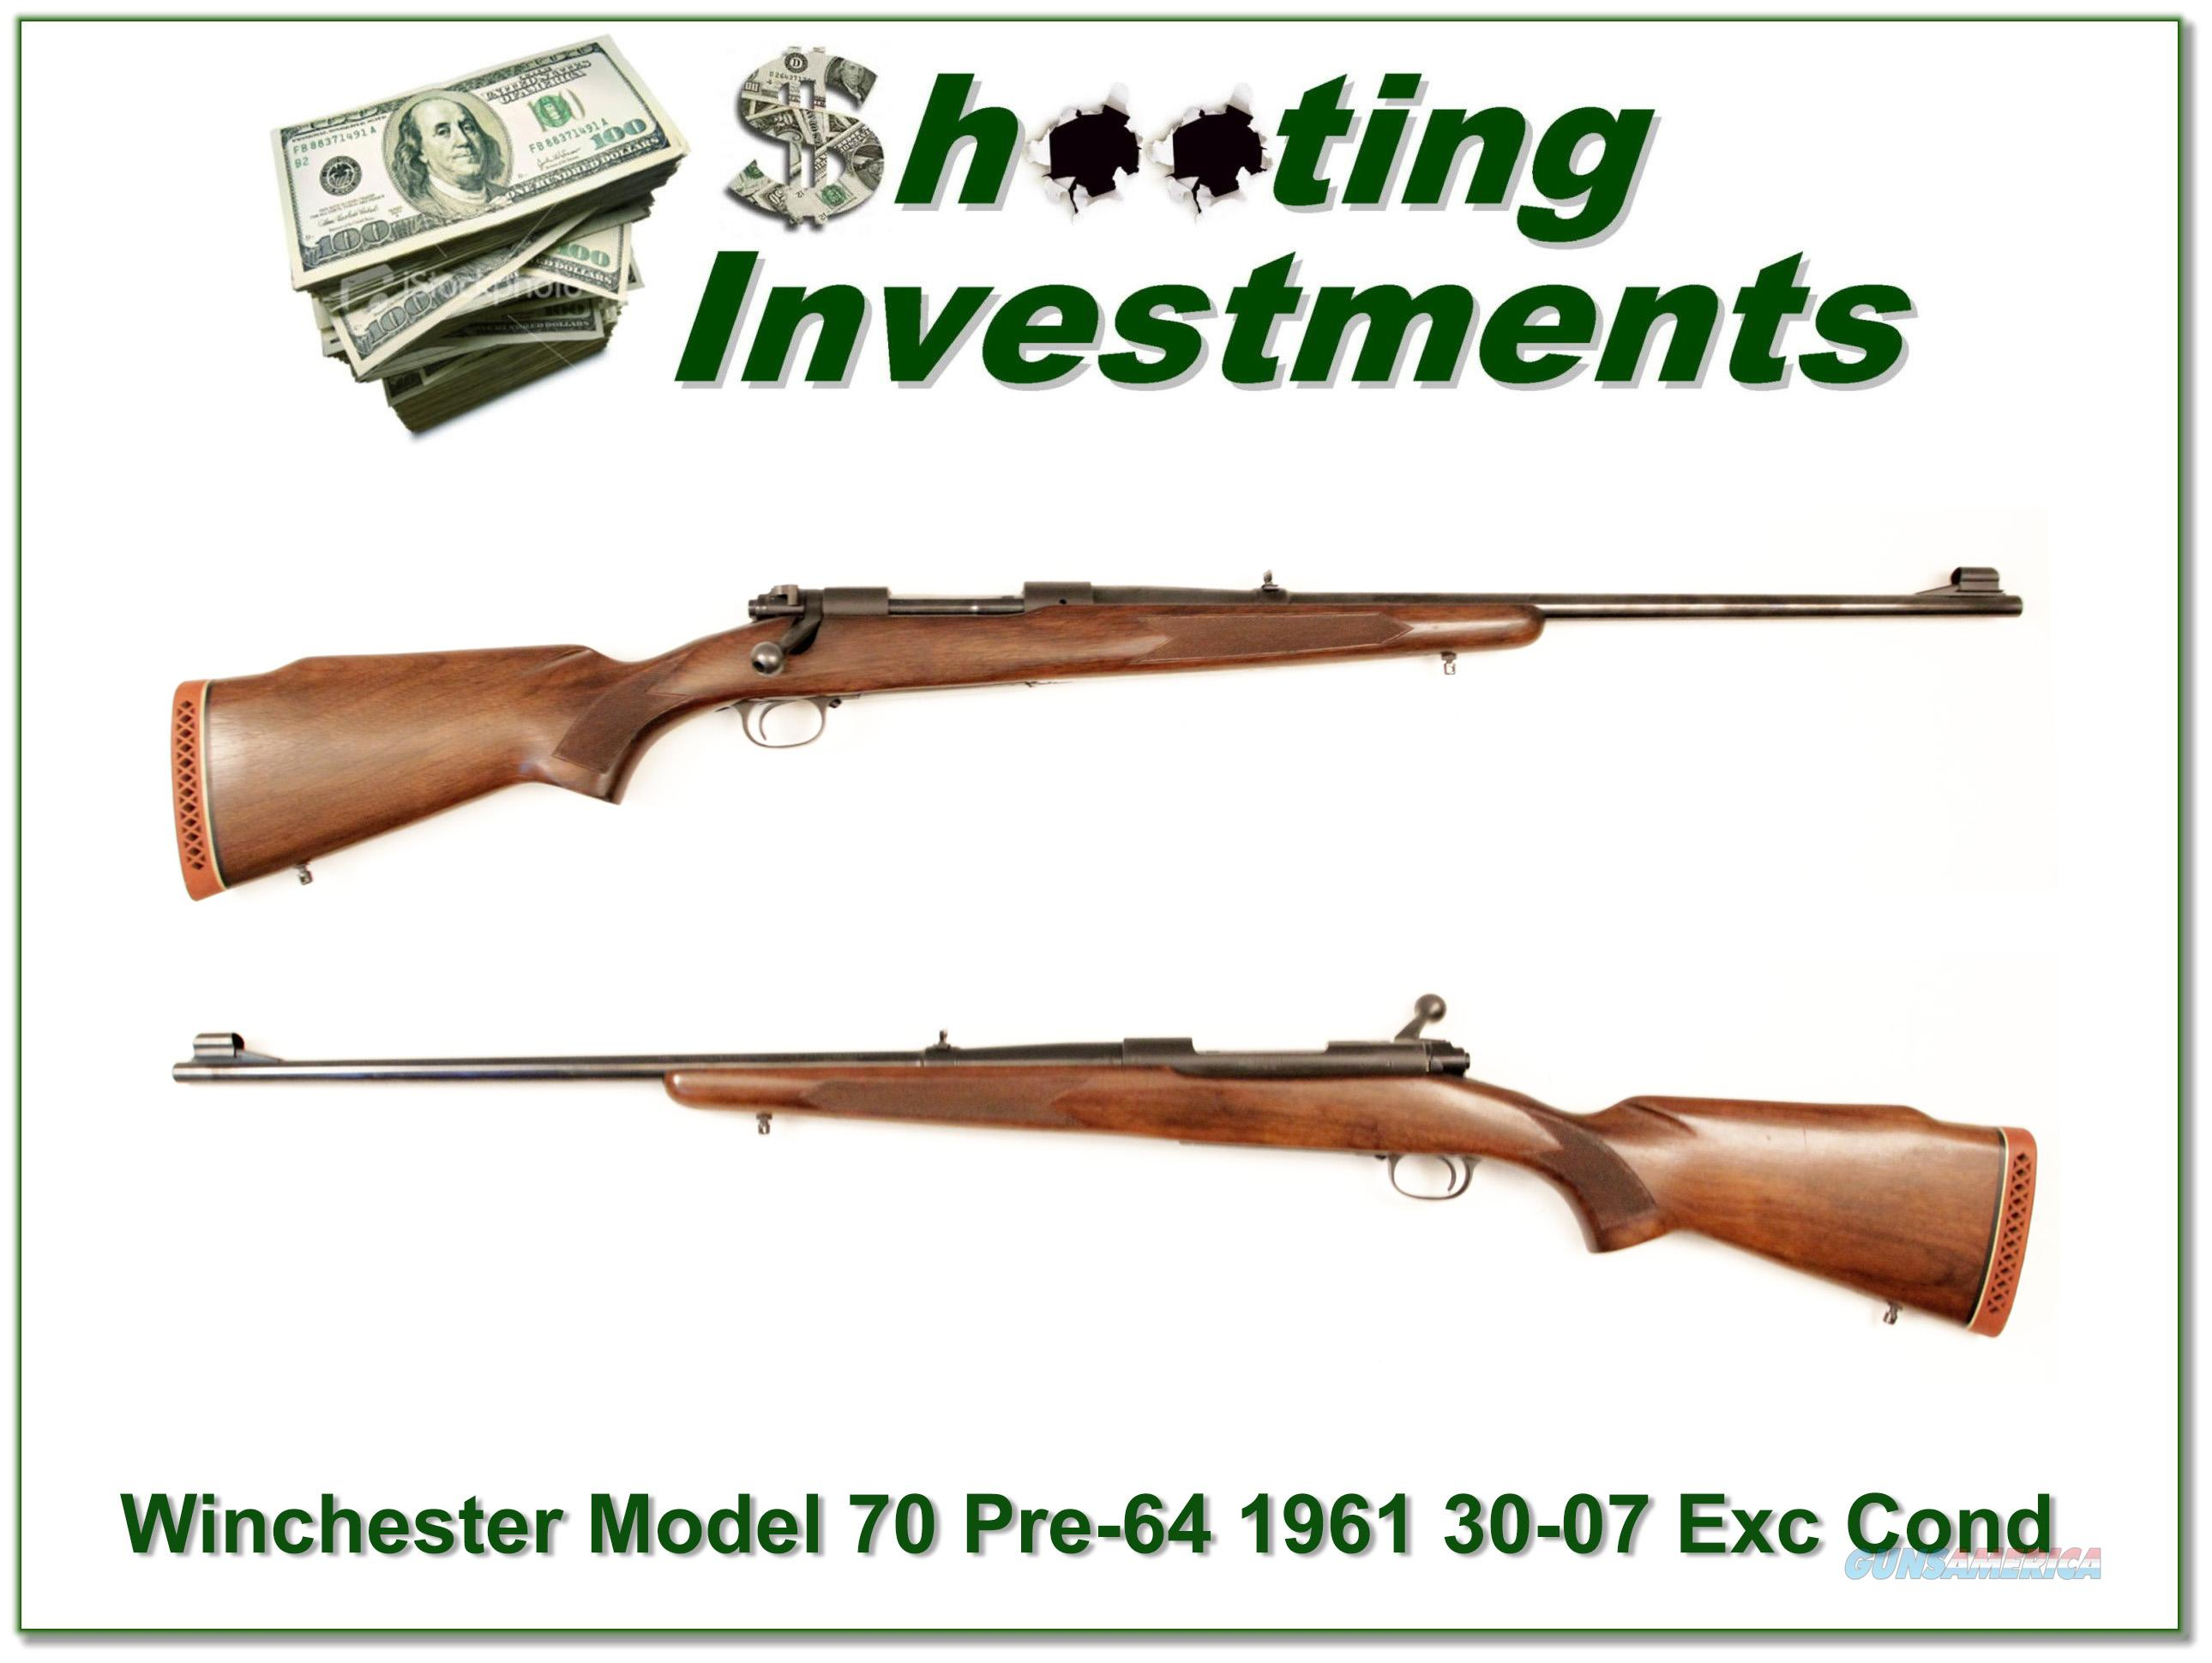 Winchester Model 70 Pre-64 30-06 1961 Exc Cond!  Guns > Rifles > Winchester Rifles - Modern Bolt/Auto/Single > Model 70 > Pre-64